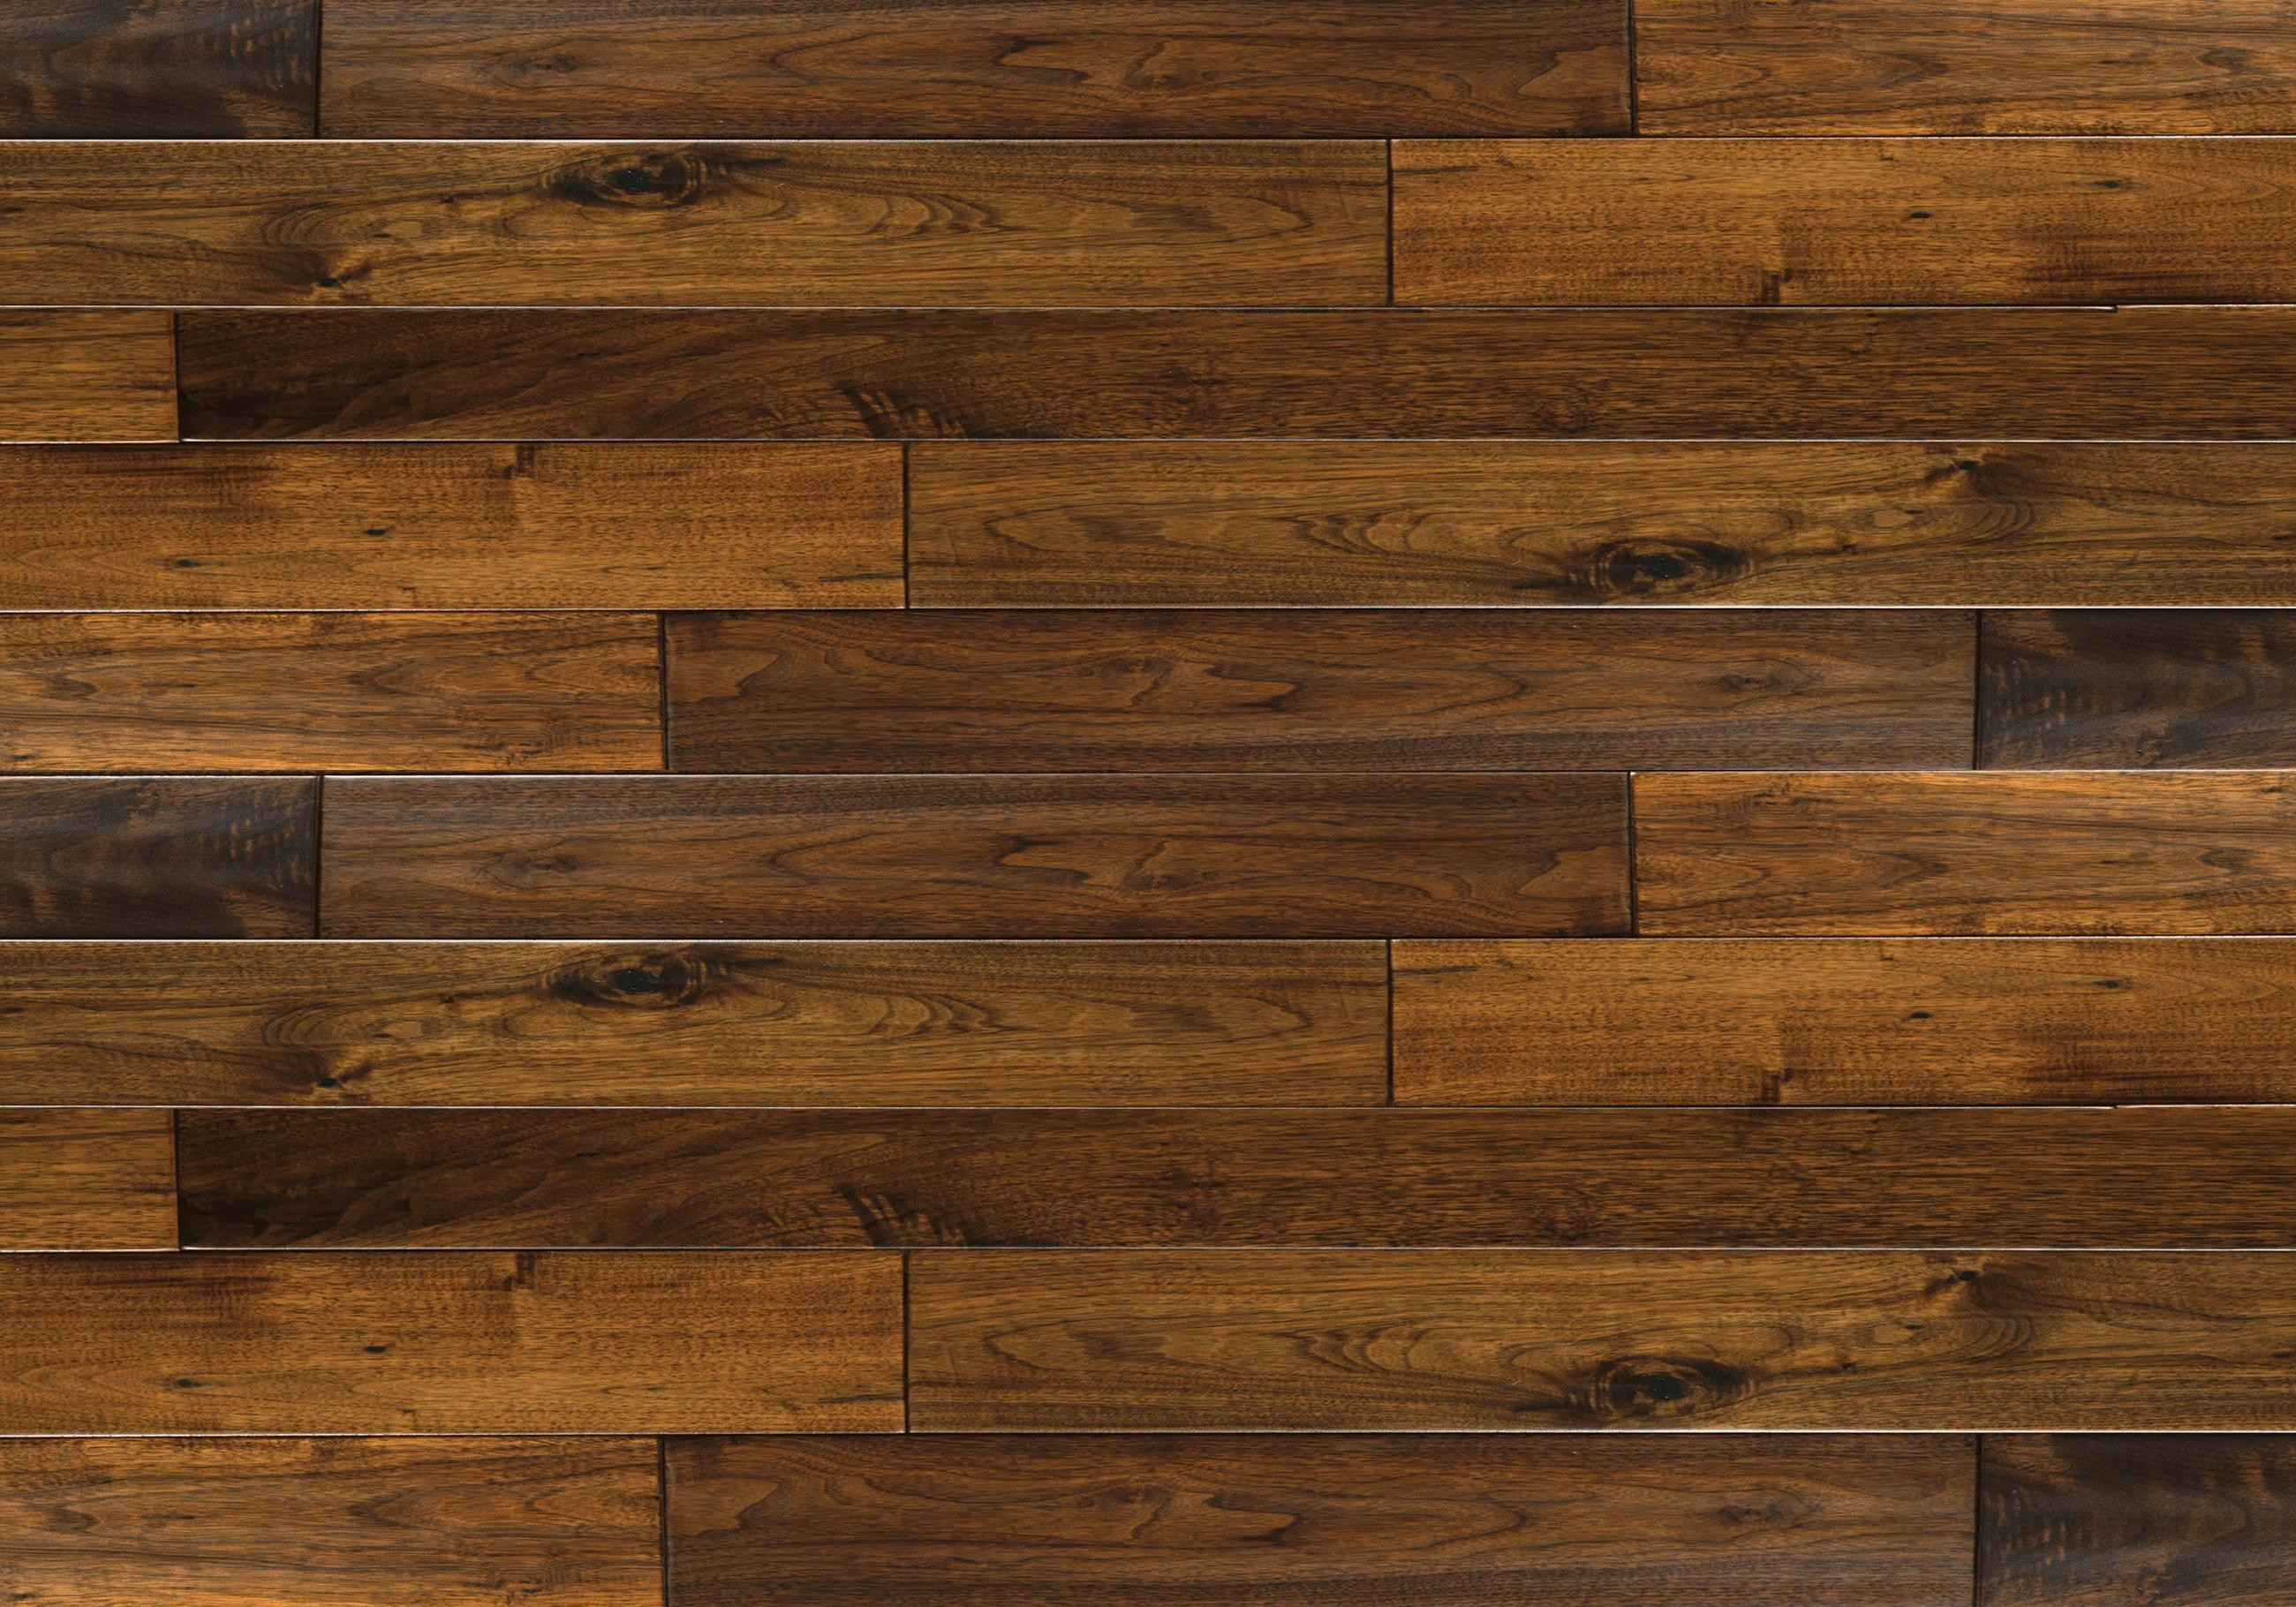 engineered oak hardwood flooring uk of breathtaking wood flooring pictures beautiful floors are here only with regard to breathtaking wood flooring picture hardwood fun fact home select cost uk type b q depot lowe direct